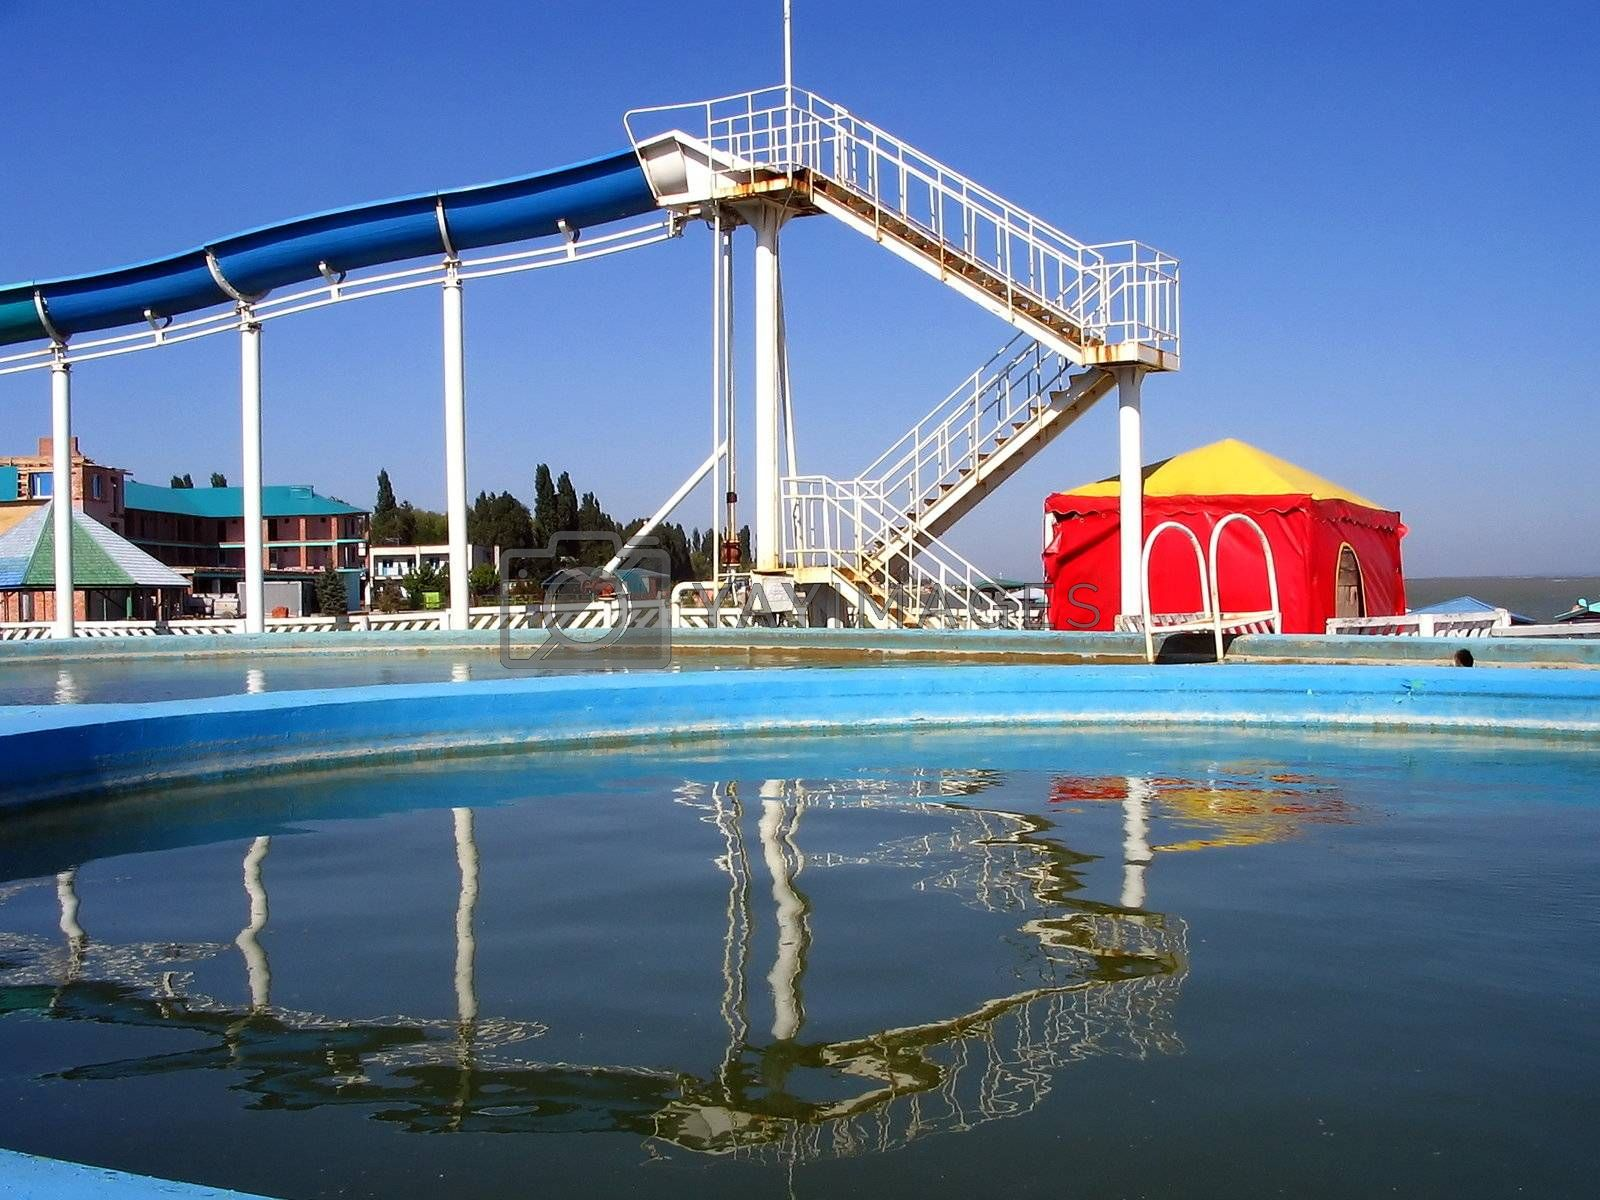 Swimming-pool and childrens  chute on seaside